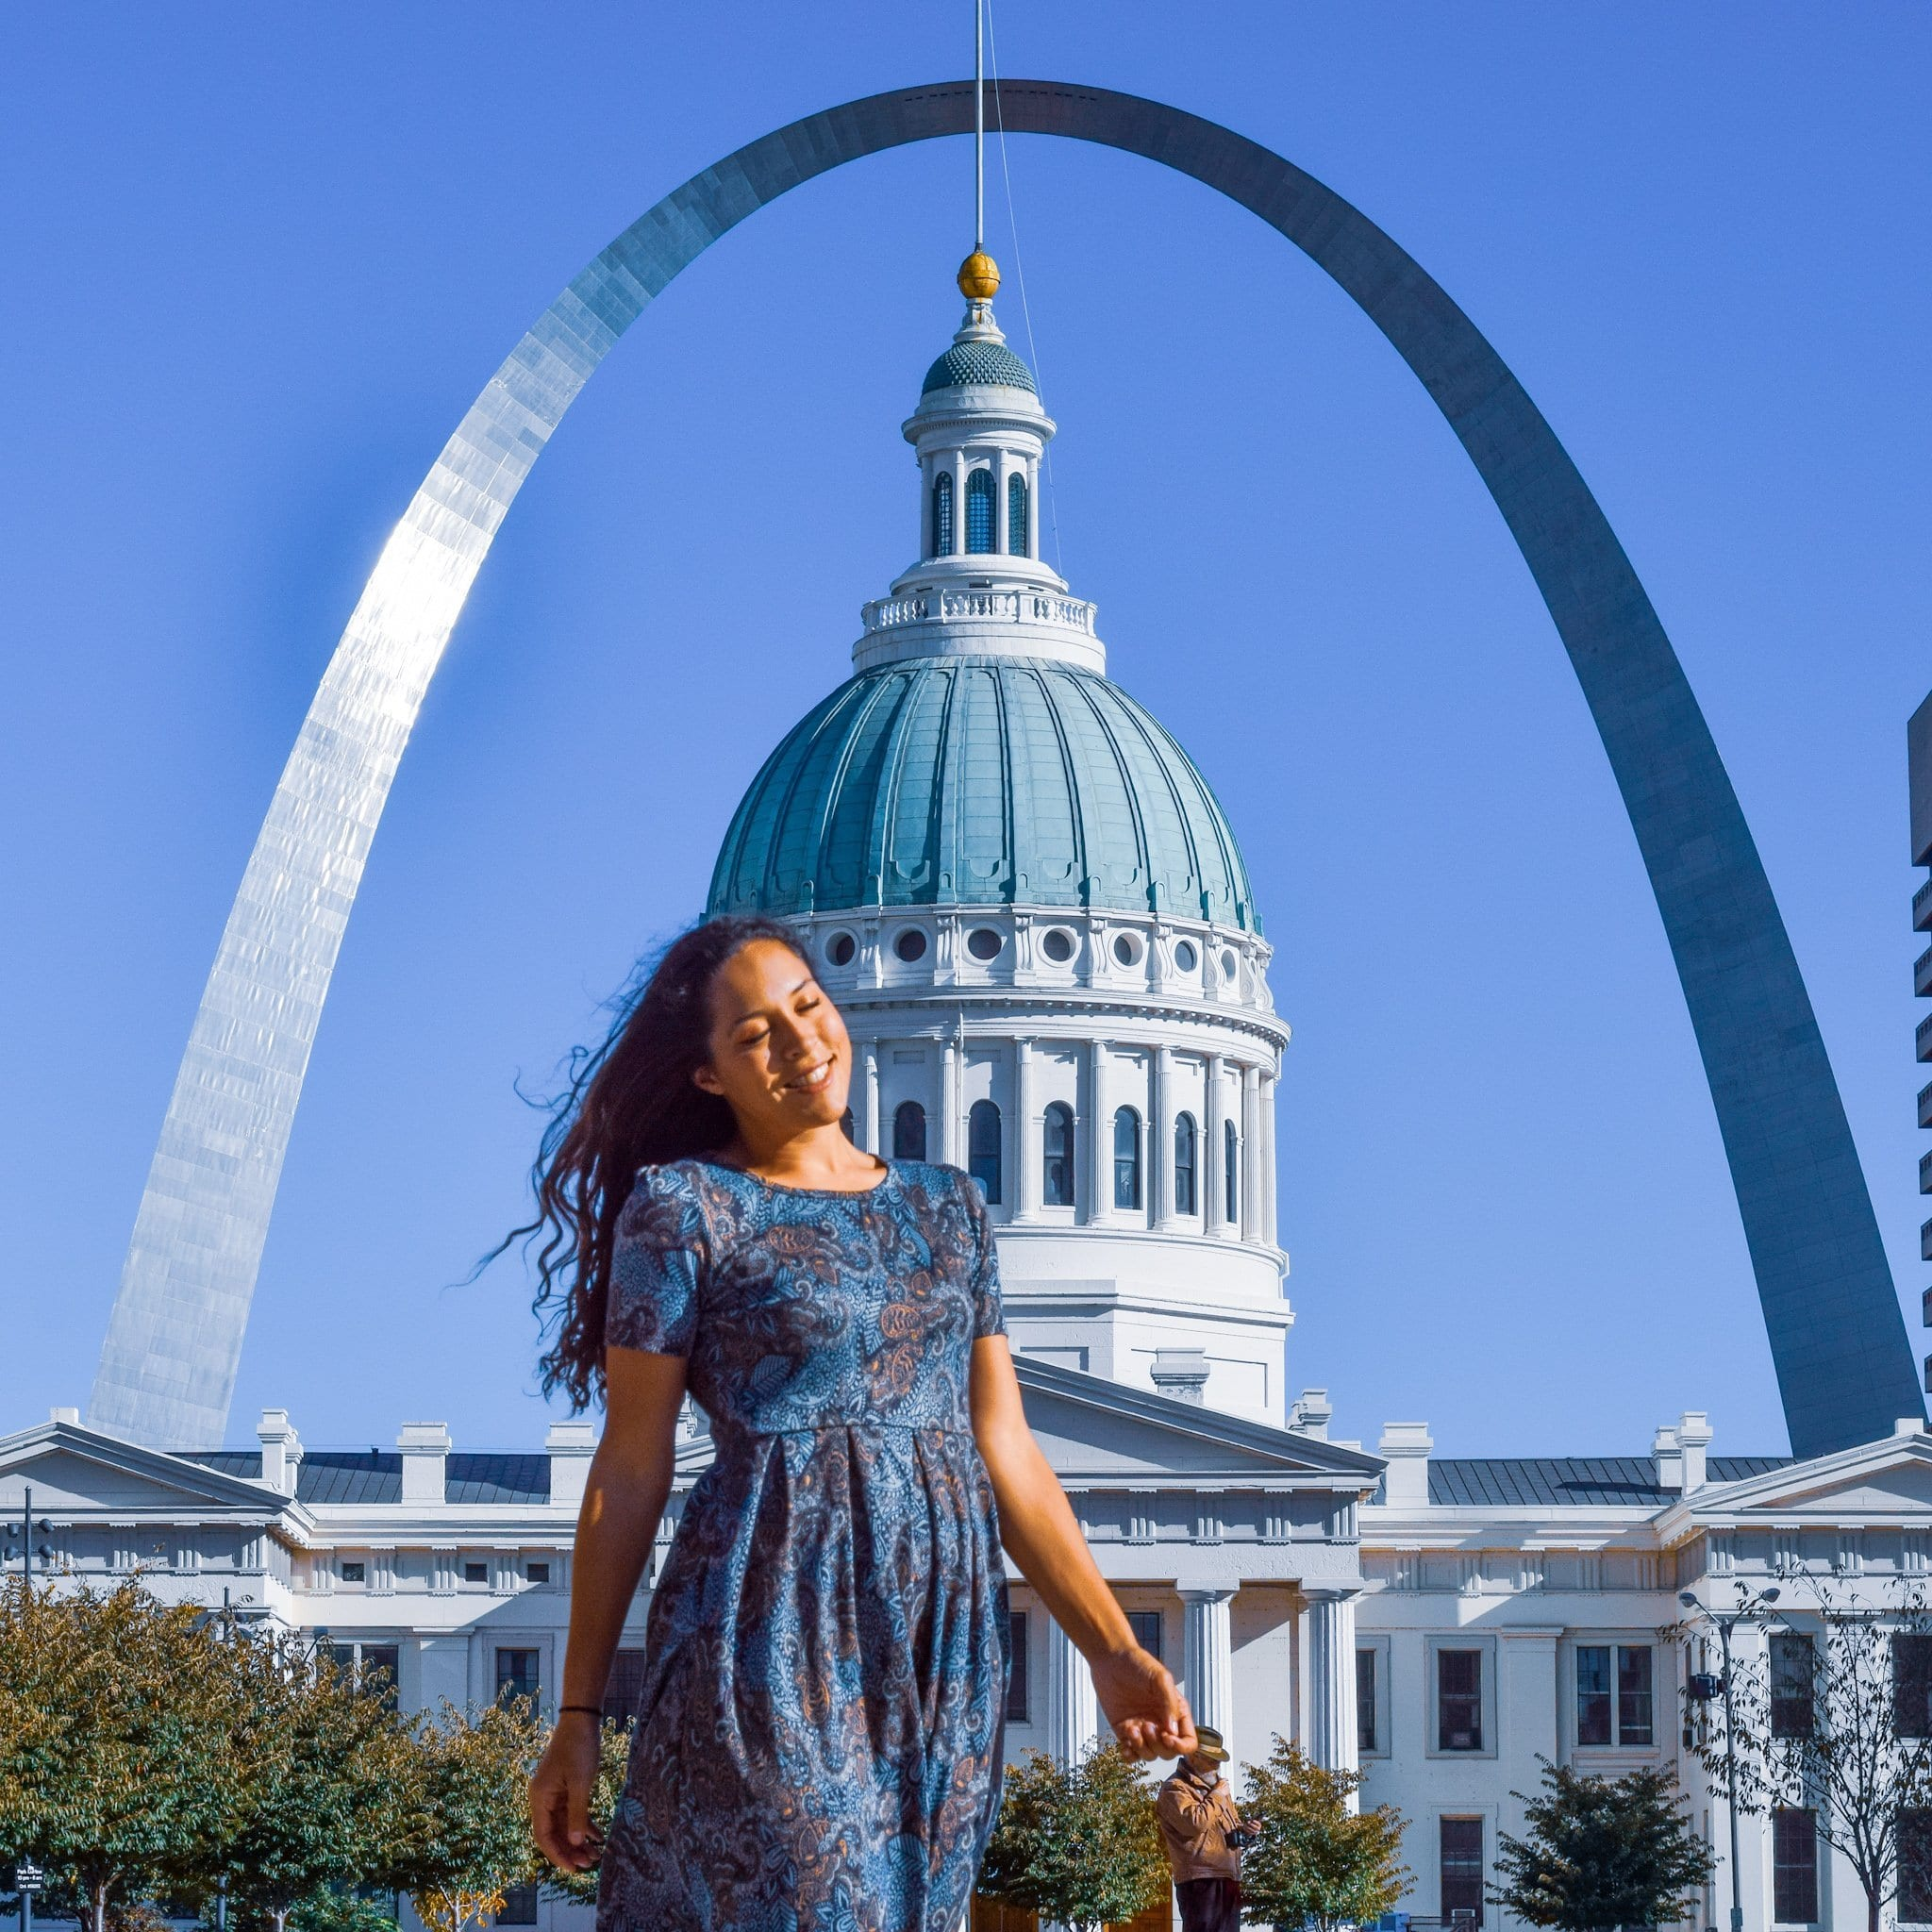 21 Things to Do in St. Louis (Missouri)